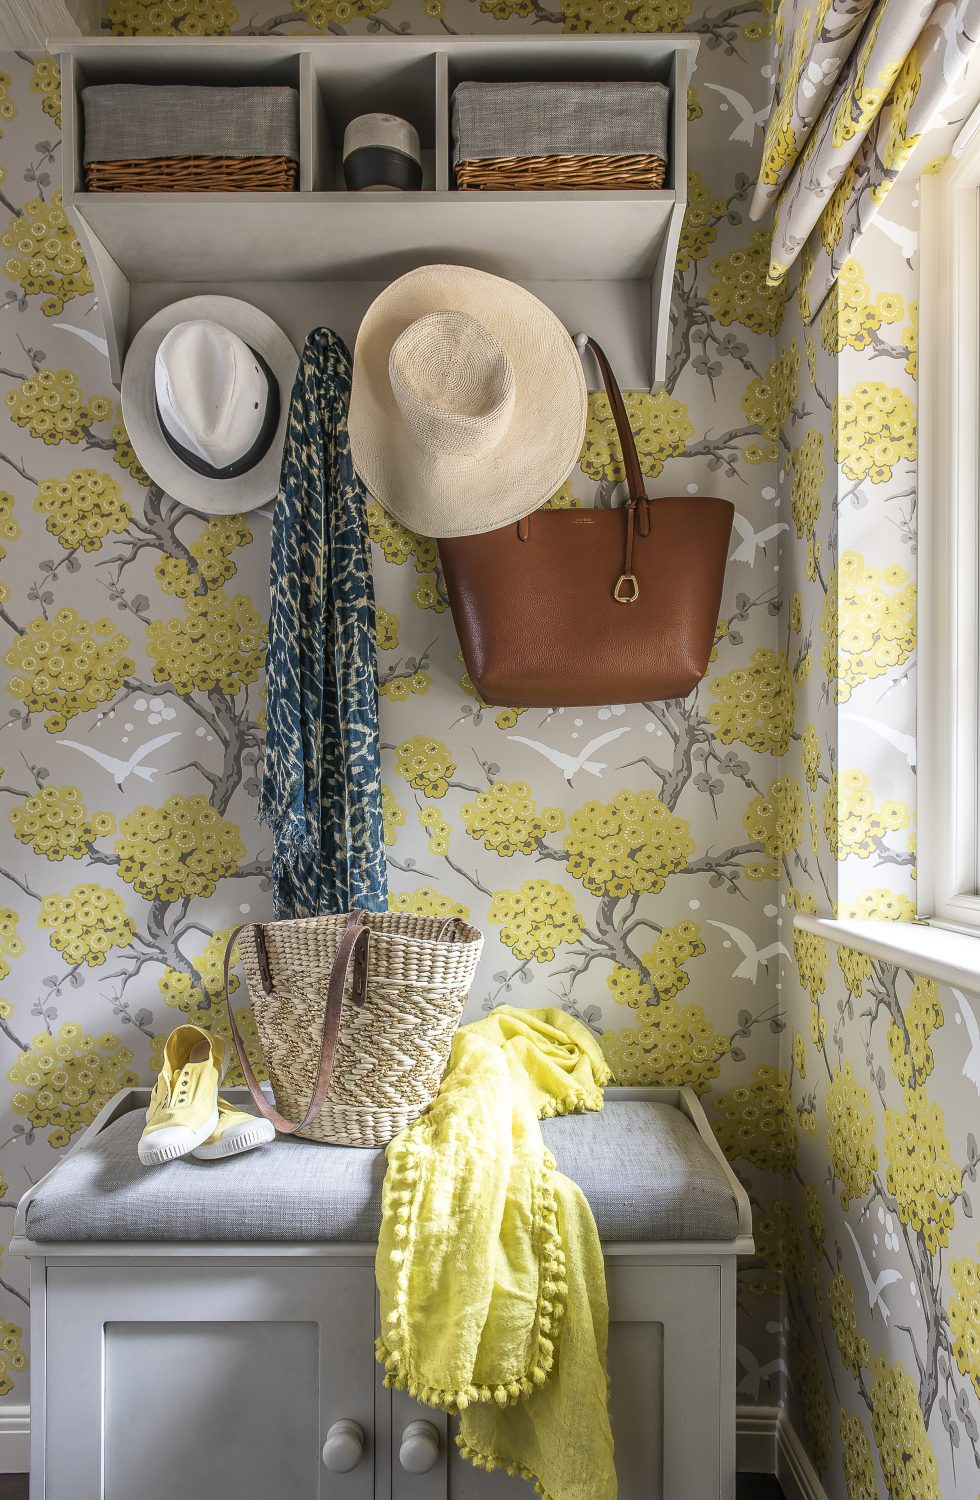 The hall is a mix of soft grey panelling and citrus yellow floral wallpaper from Osborne & Little